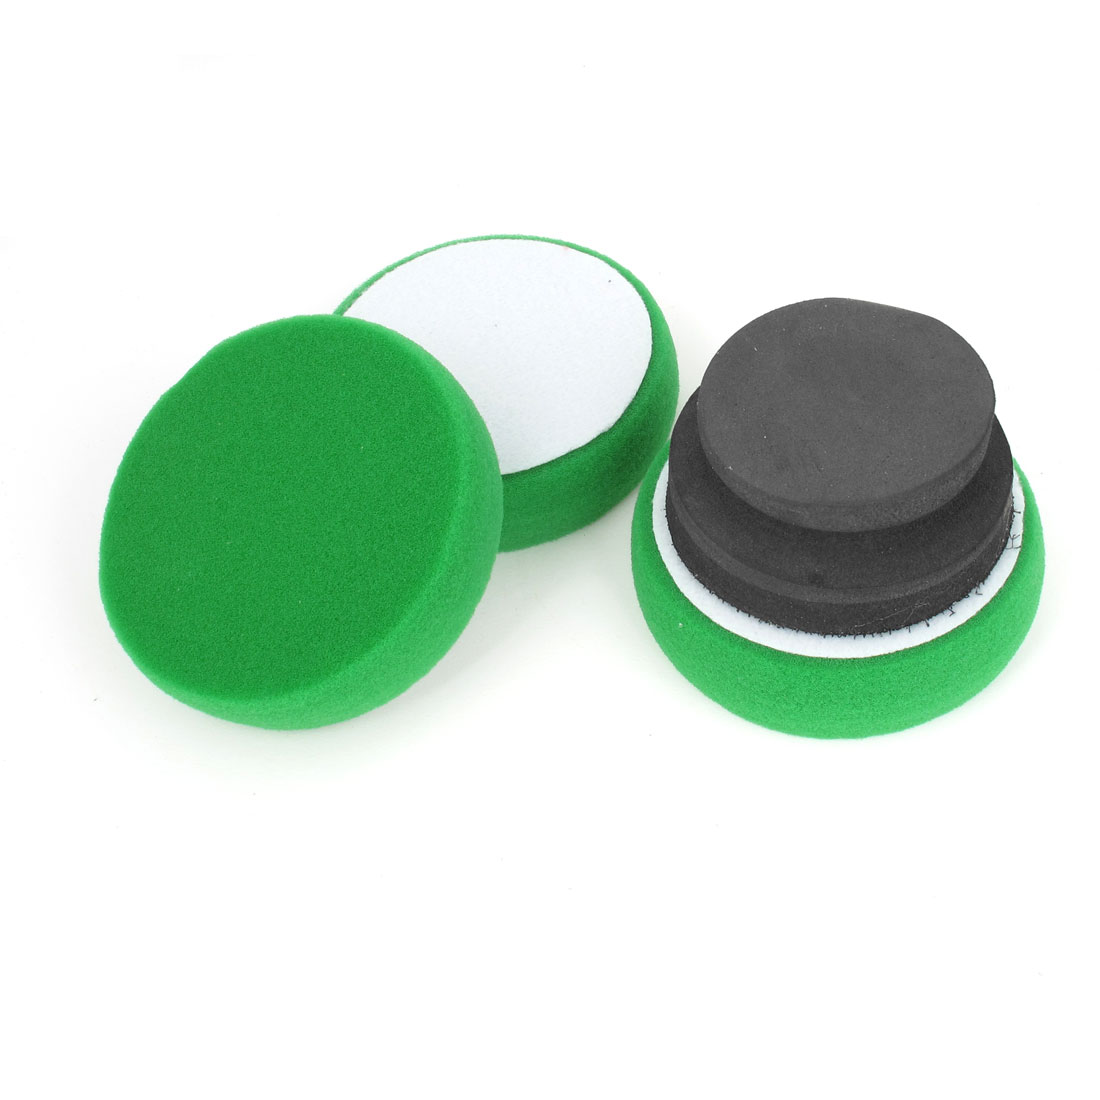 3 in 1 Green Car Round Cleaning Washing Polishing Tool Sponge Pad Set